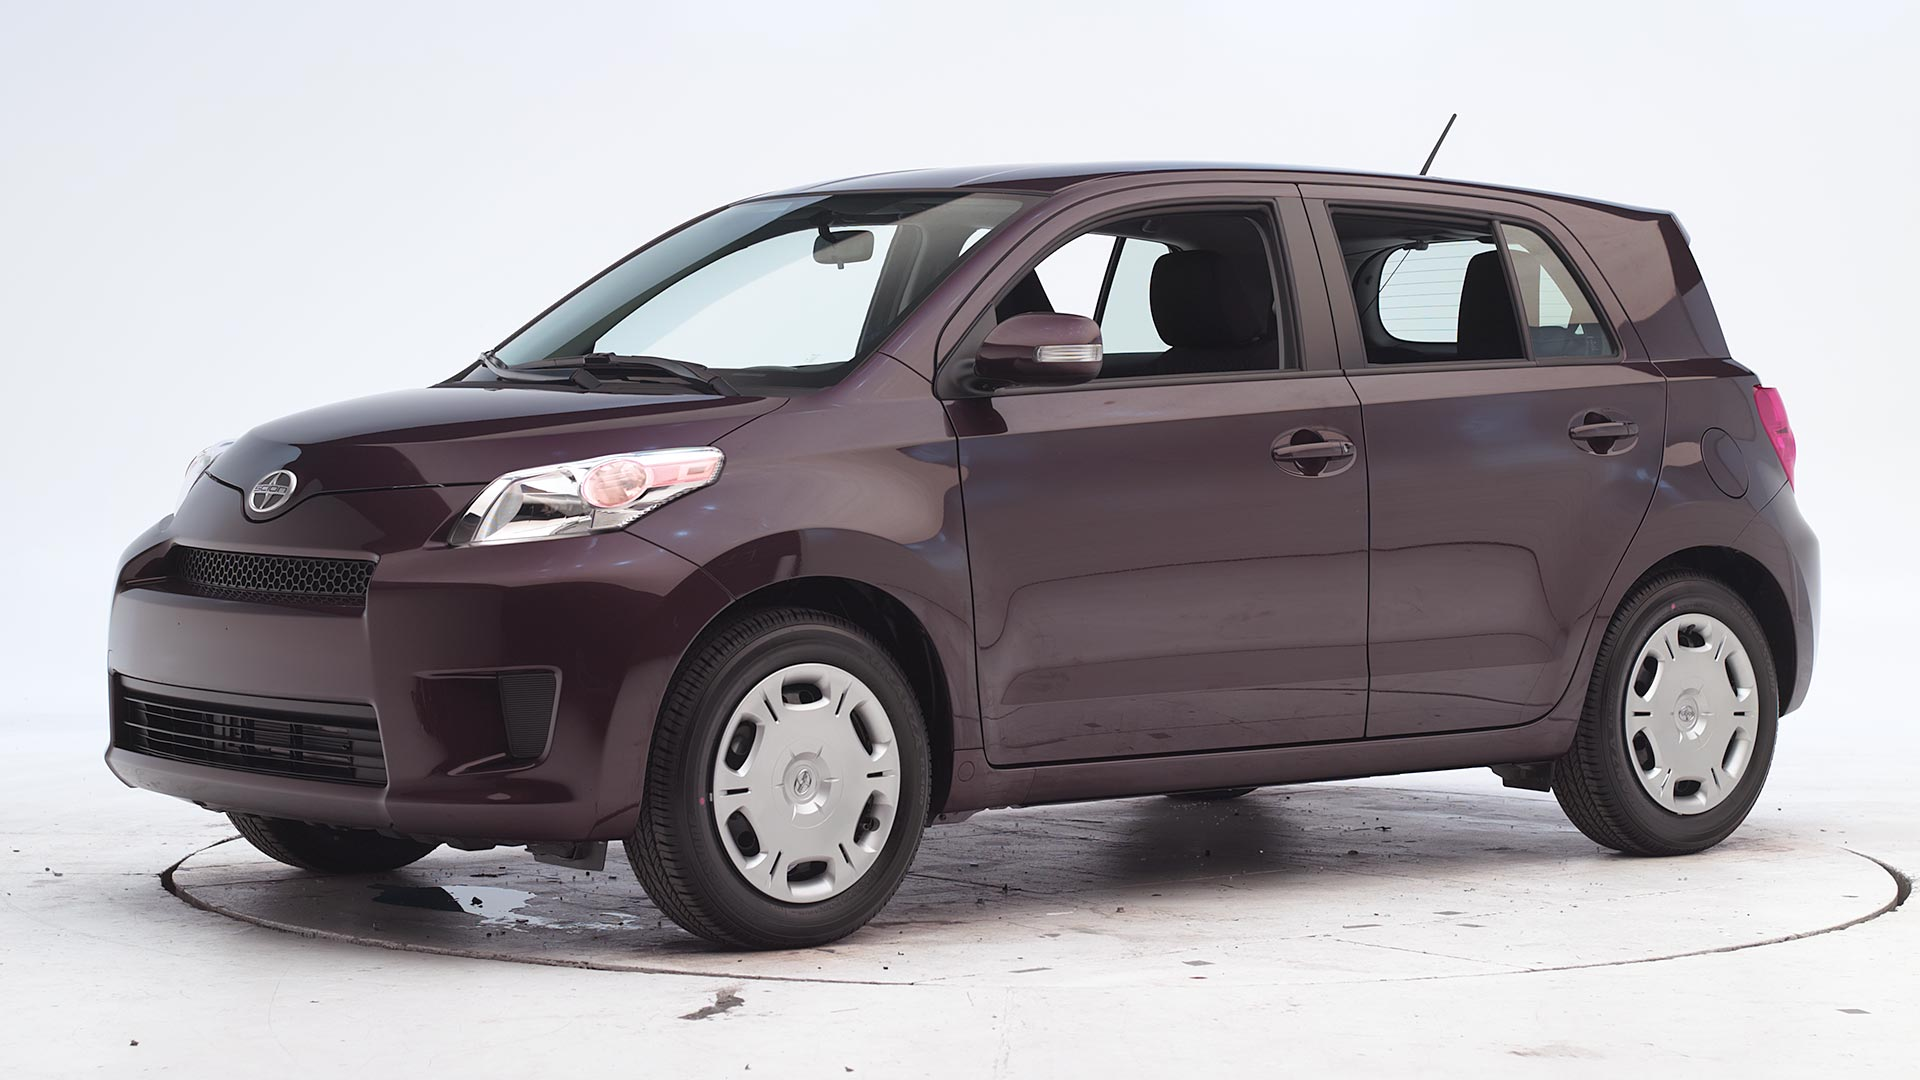 2011 Scion xD 4-door hatchback